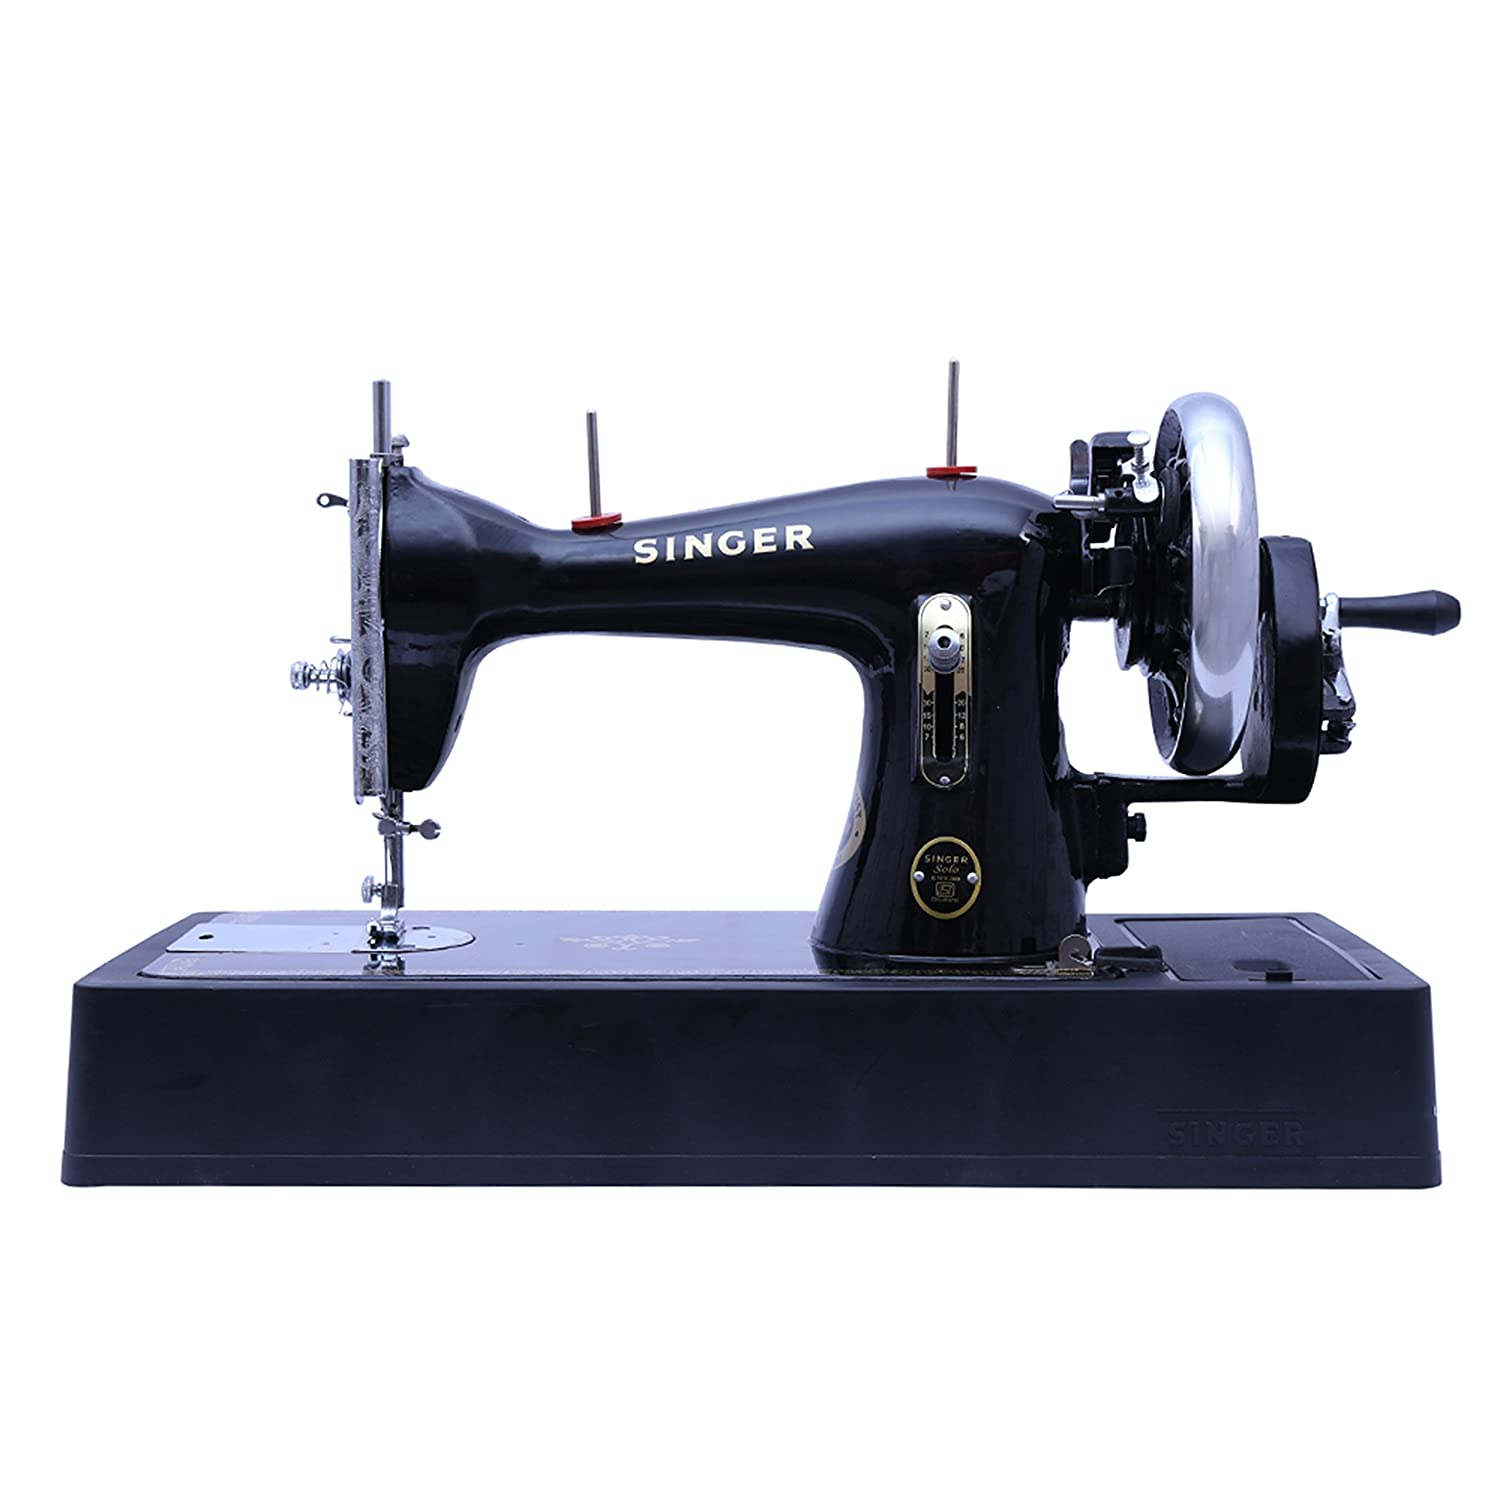 Buy Singer Solo Straight Stitch Hand Sewing Machine Black Online Cool Circuit Board Computer Copper And Iphone 5 Covers 4495 At Low Prices In India